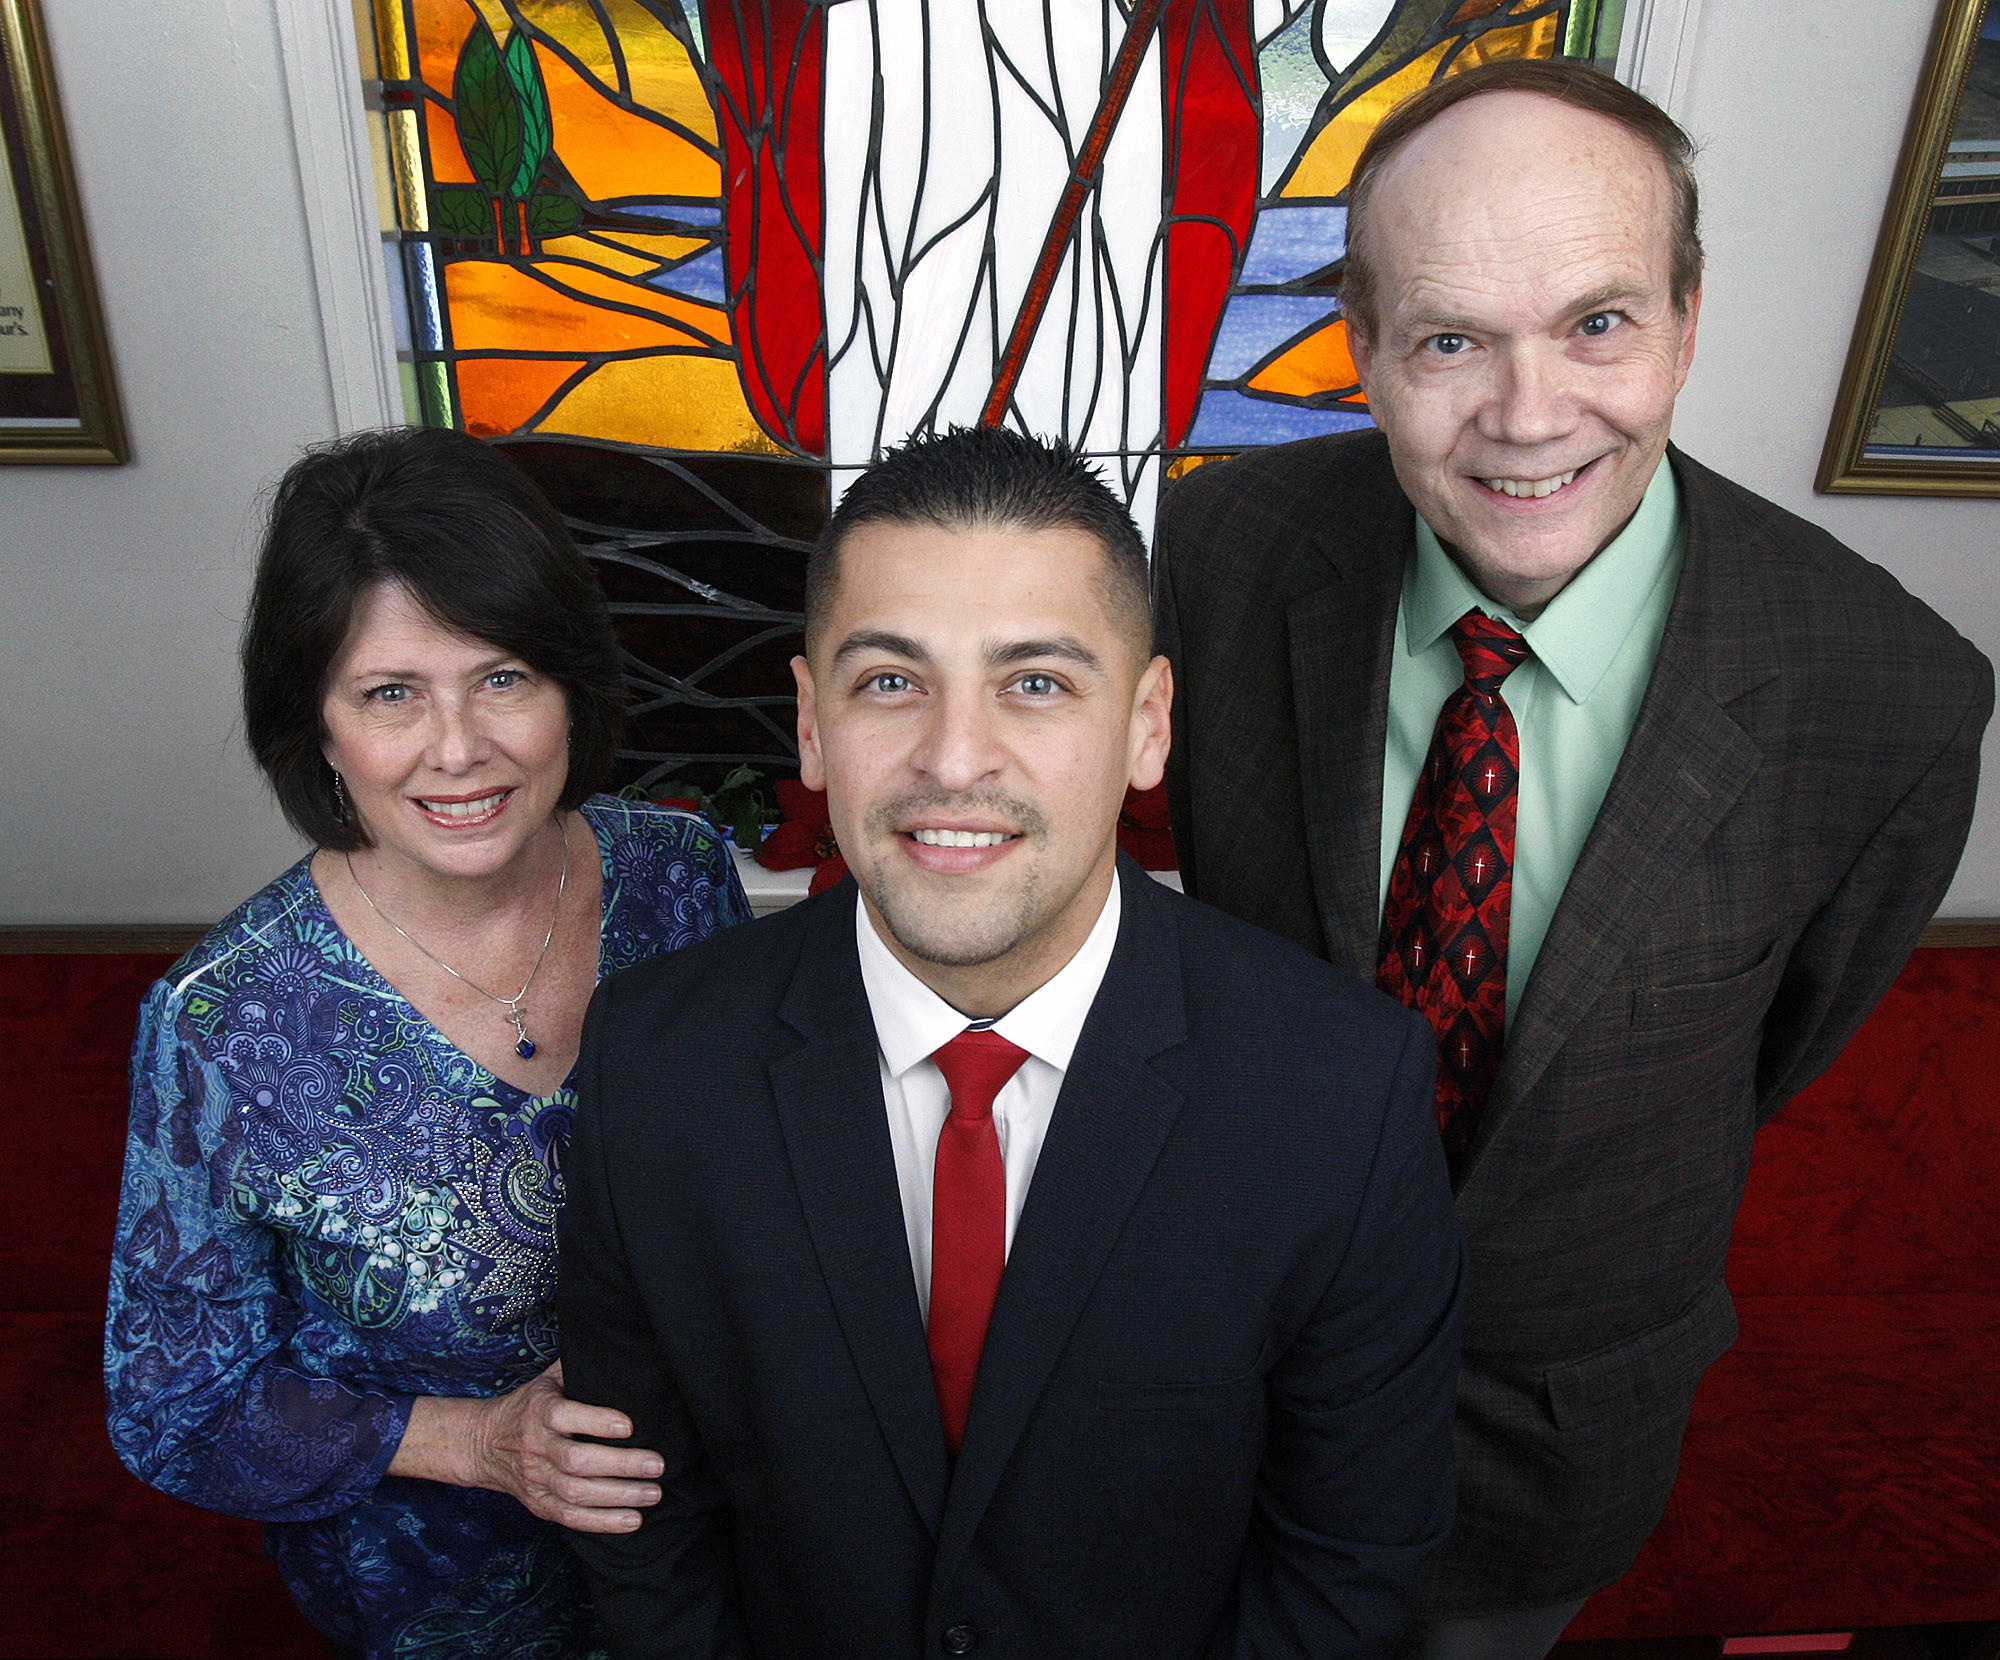 Joseph Cordova, in front, with Cathy Keen, and Dr. Ronald Vandermey, co-Pastor of Bethany Bible Presbyterian Church in Montrose inside the church on Monday, December 23, 2013. About 10 years ago, when Cordova's life was at a low point, Vandermey took him to the USC school of dentistry to have substantial work done on Cordova's teeth. There, he met Keen who has been his mentor and mom ever since, filling a need Cordova had after his parents died, and grandparents neglected.